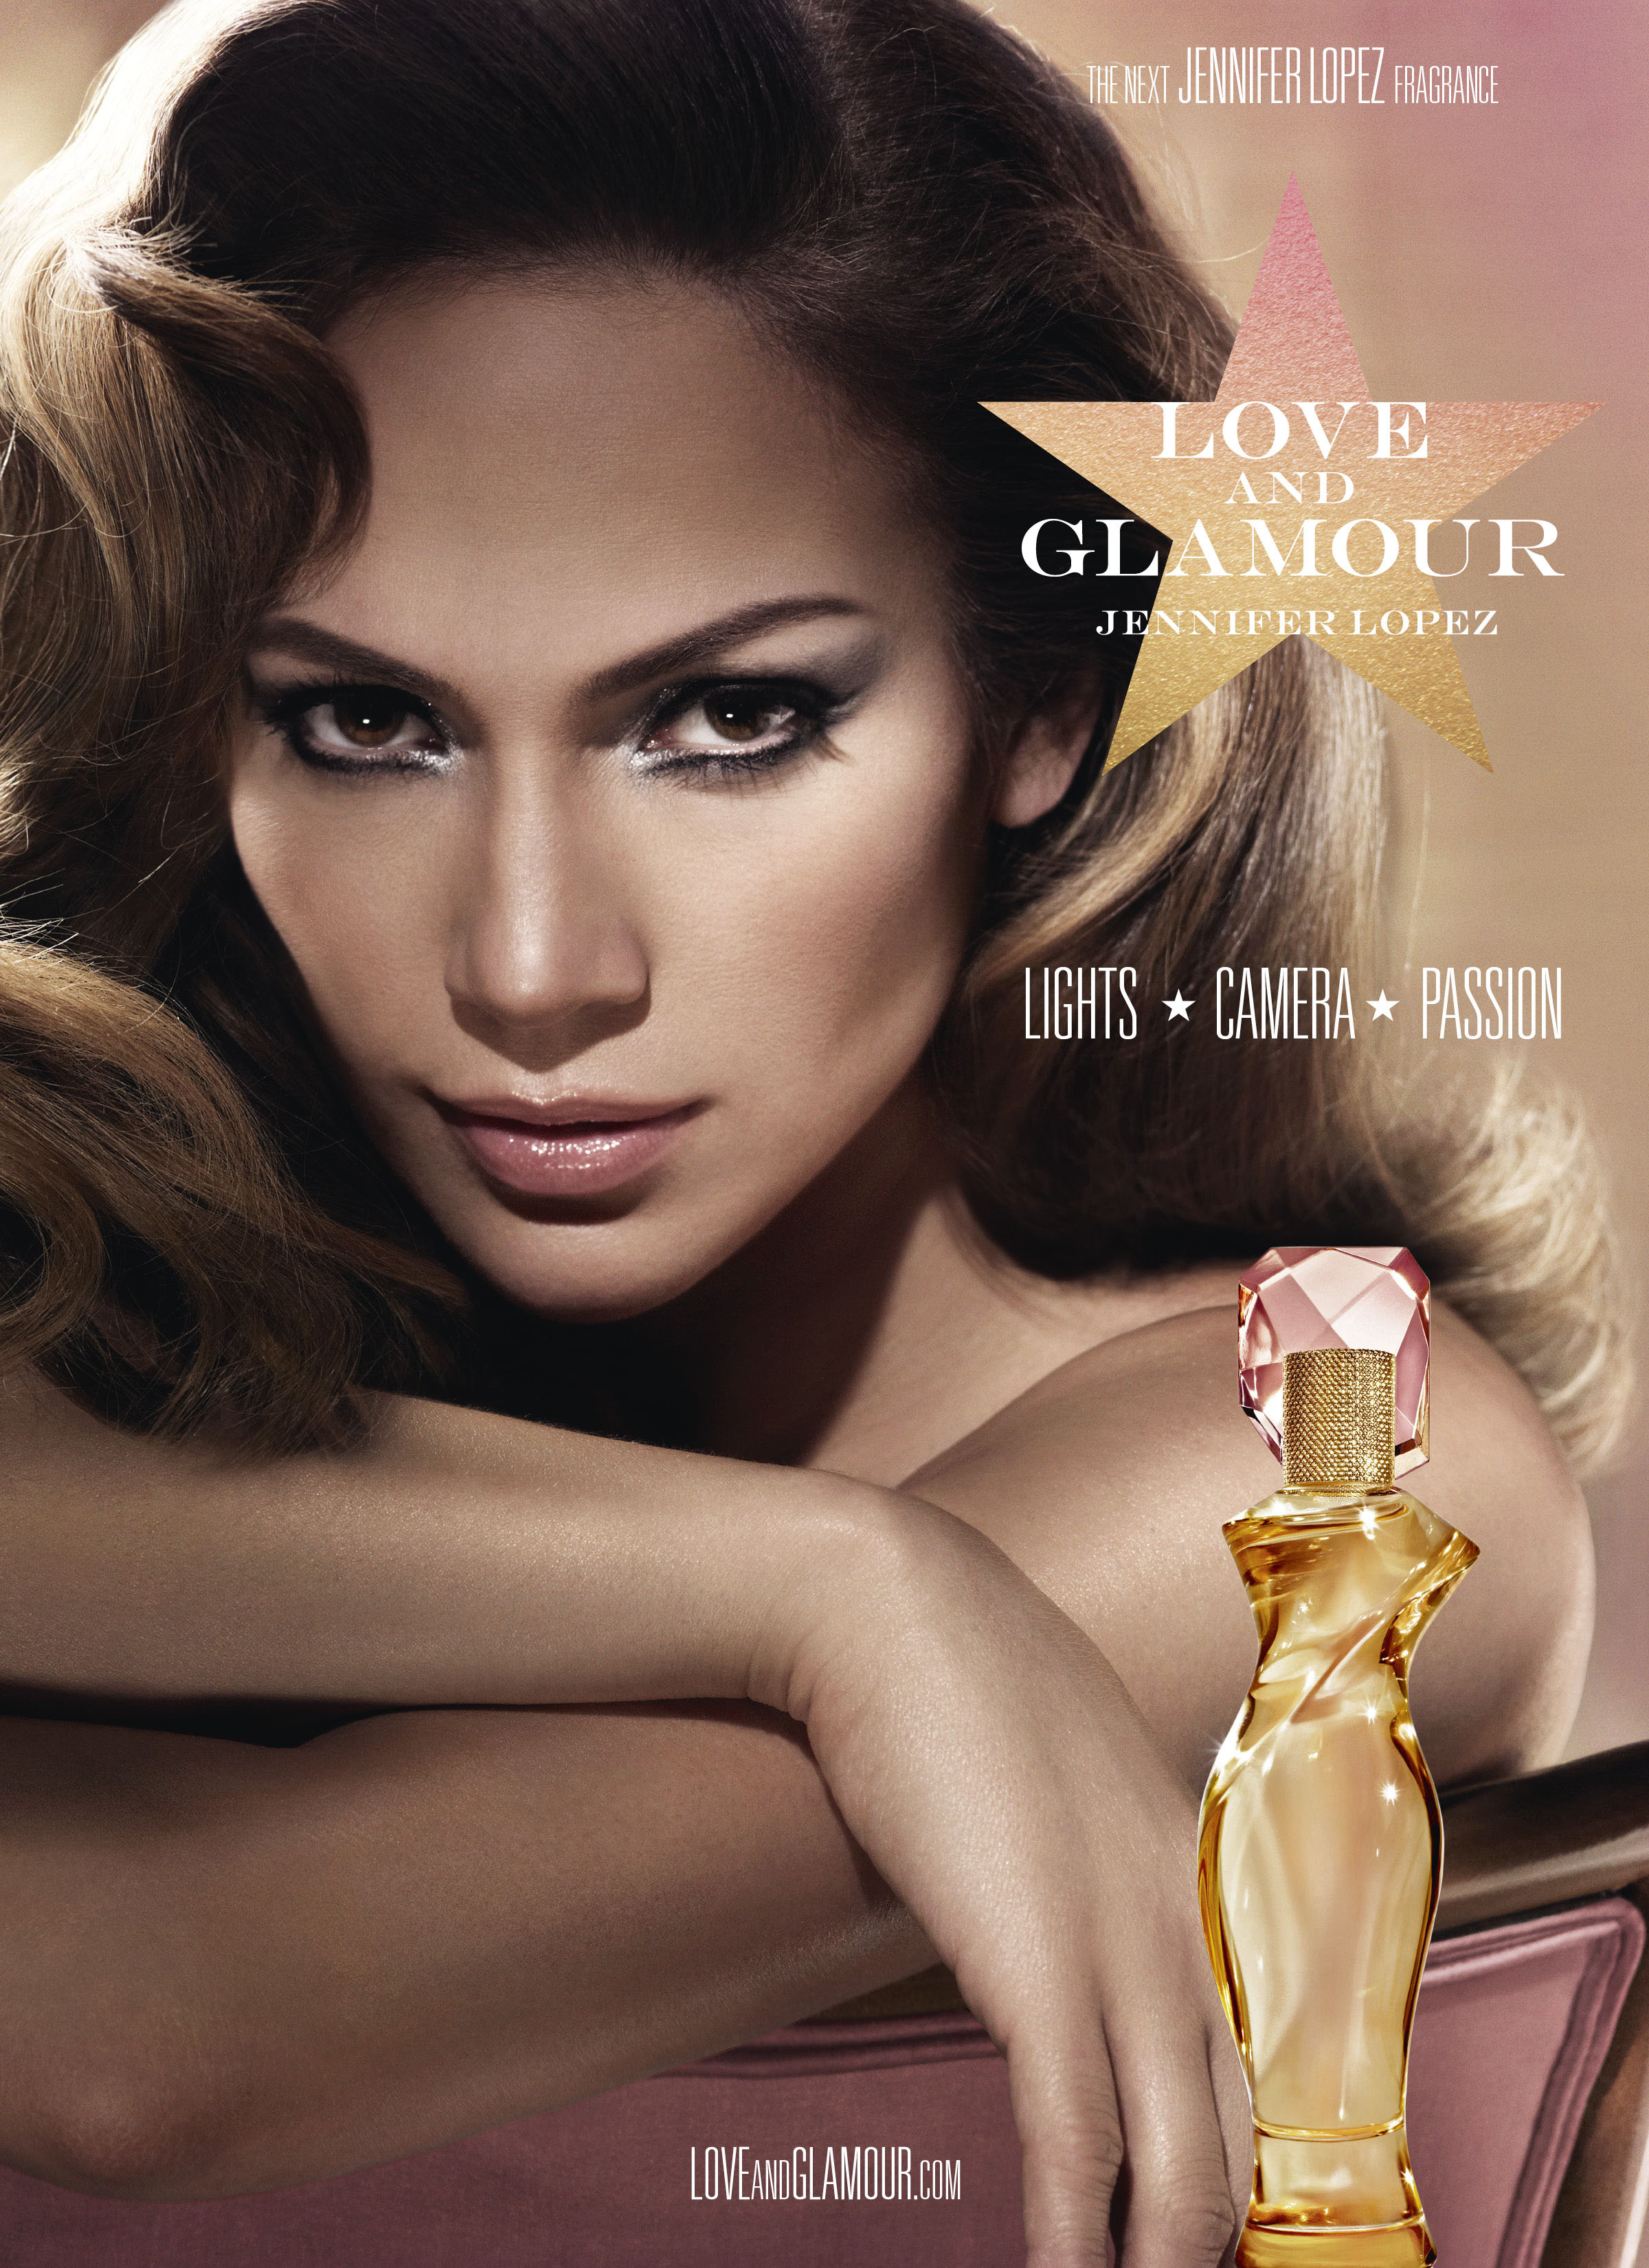 ... is Maria B. from San Jacinto, CA. Congrats Maria, enjoy the perfume